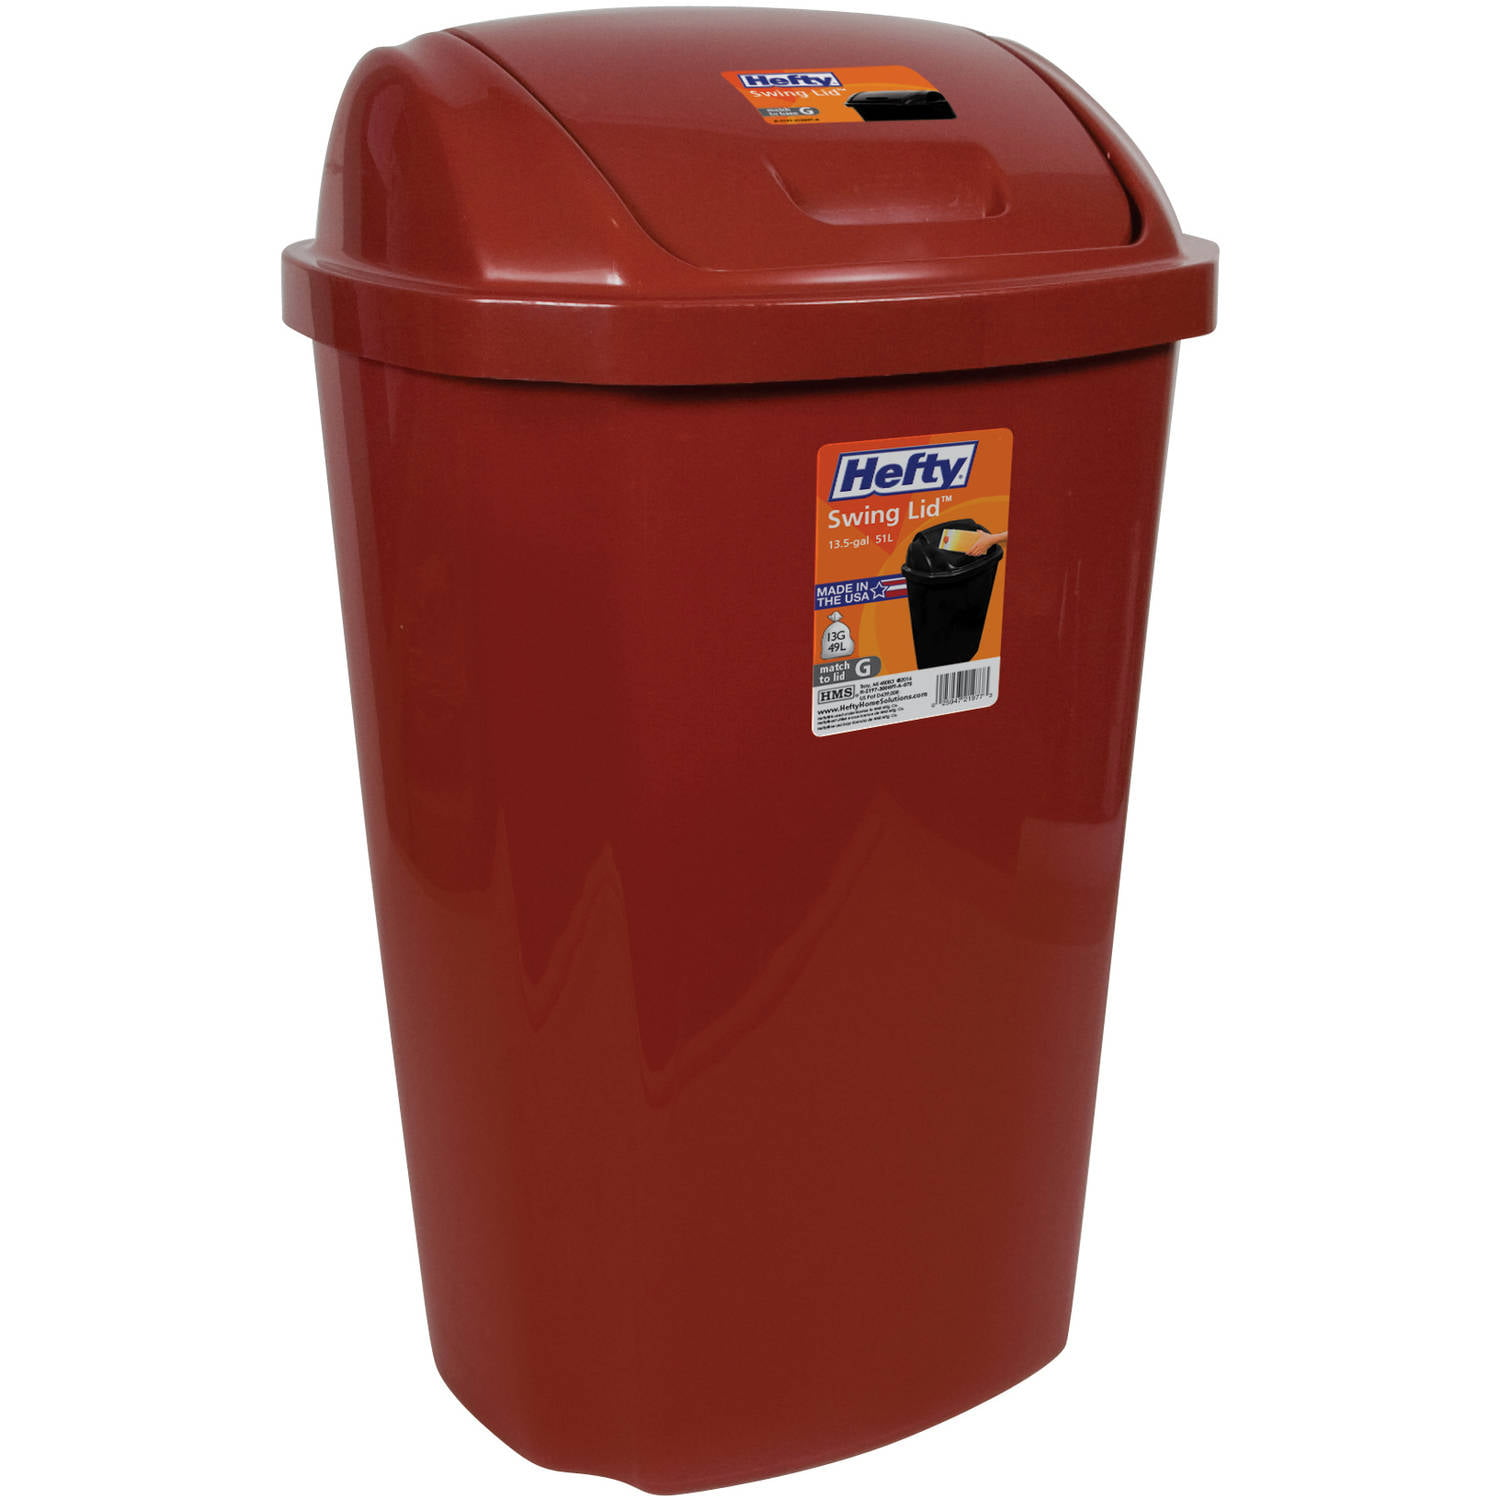 Hefty Swing Lid 135 Gallon Trash Can Multiple Colors Walmartcom